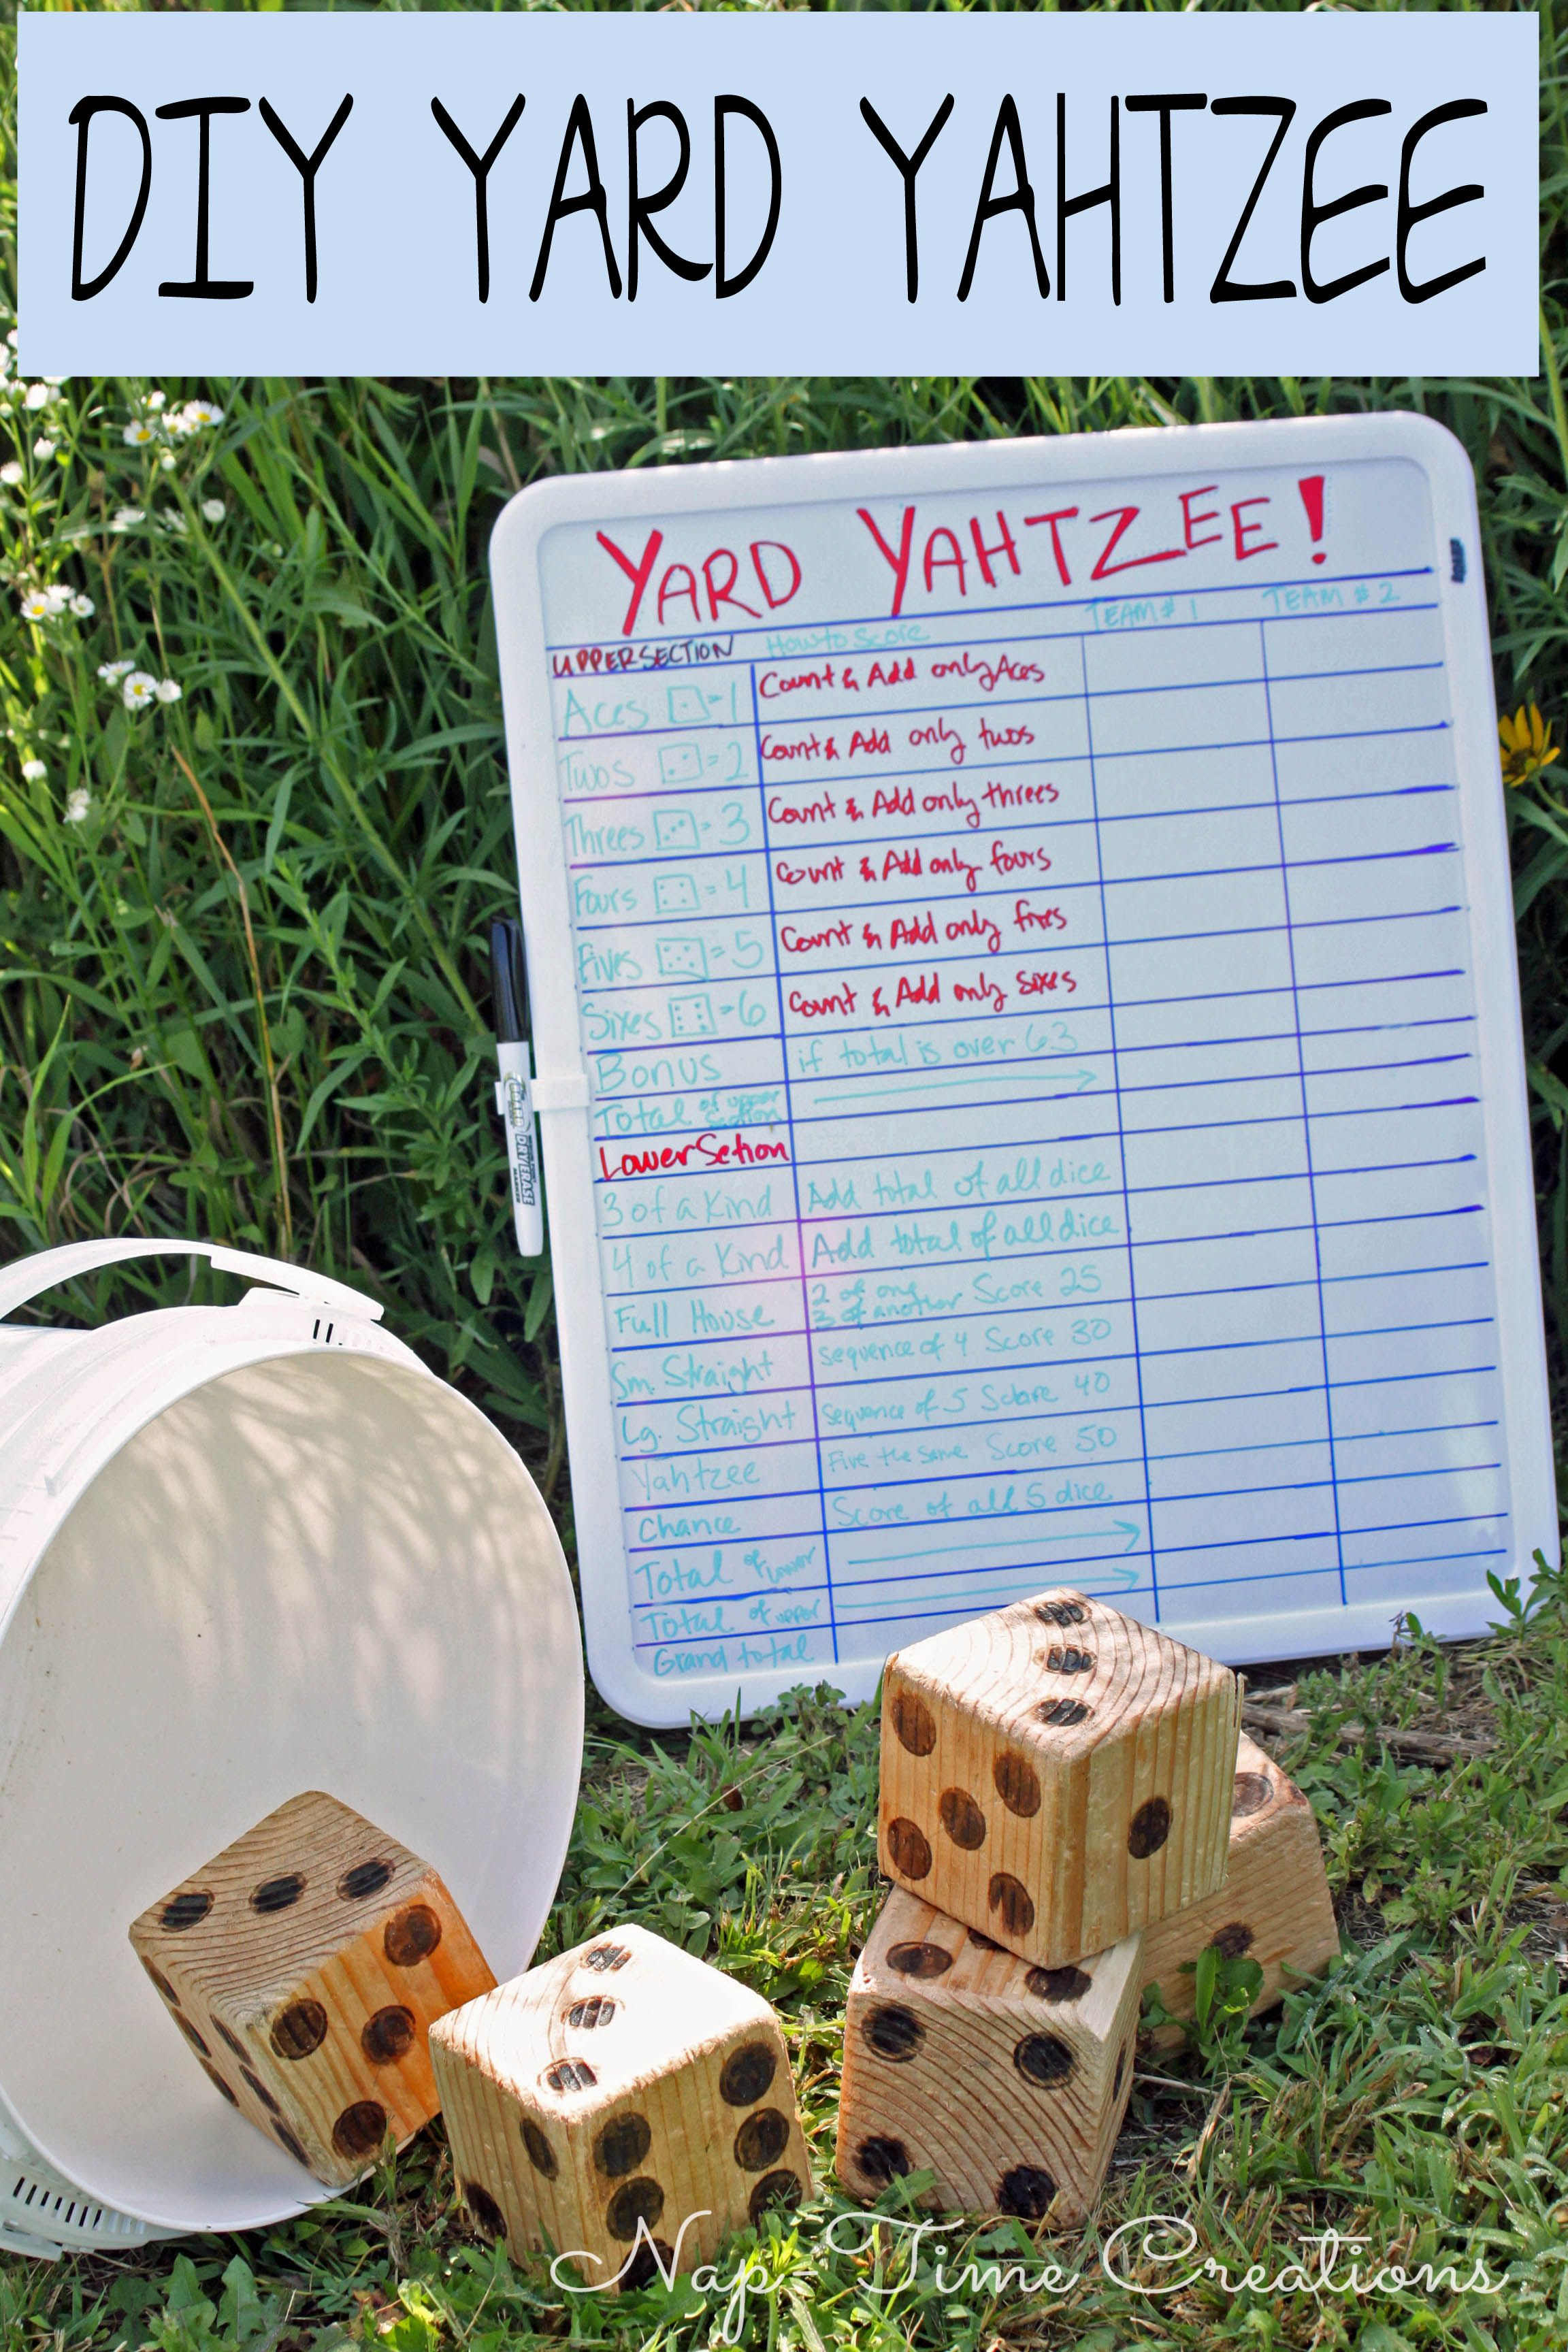 yard yahtzee DIY yard game easy to make fun to play